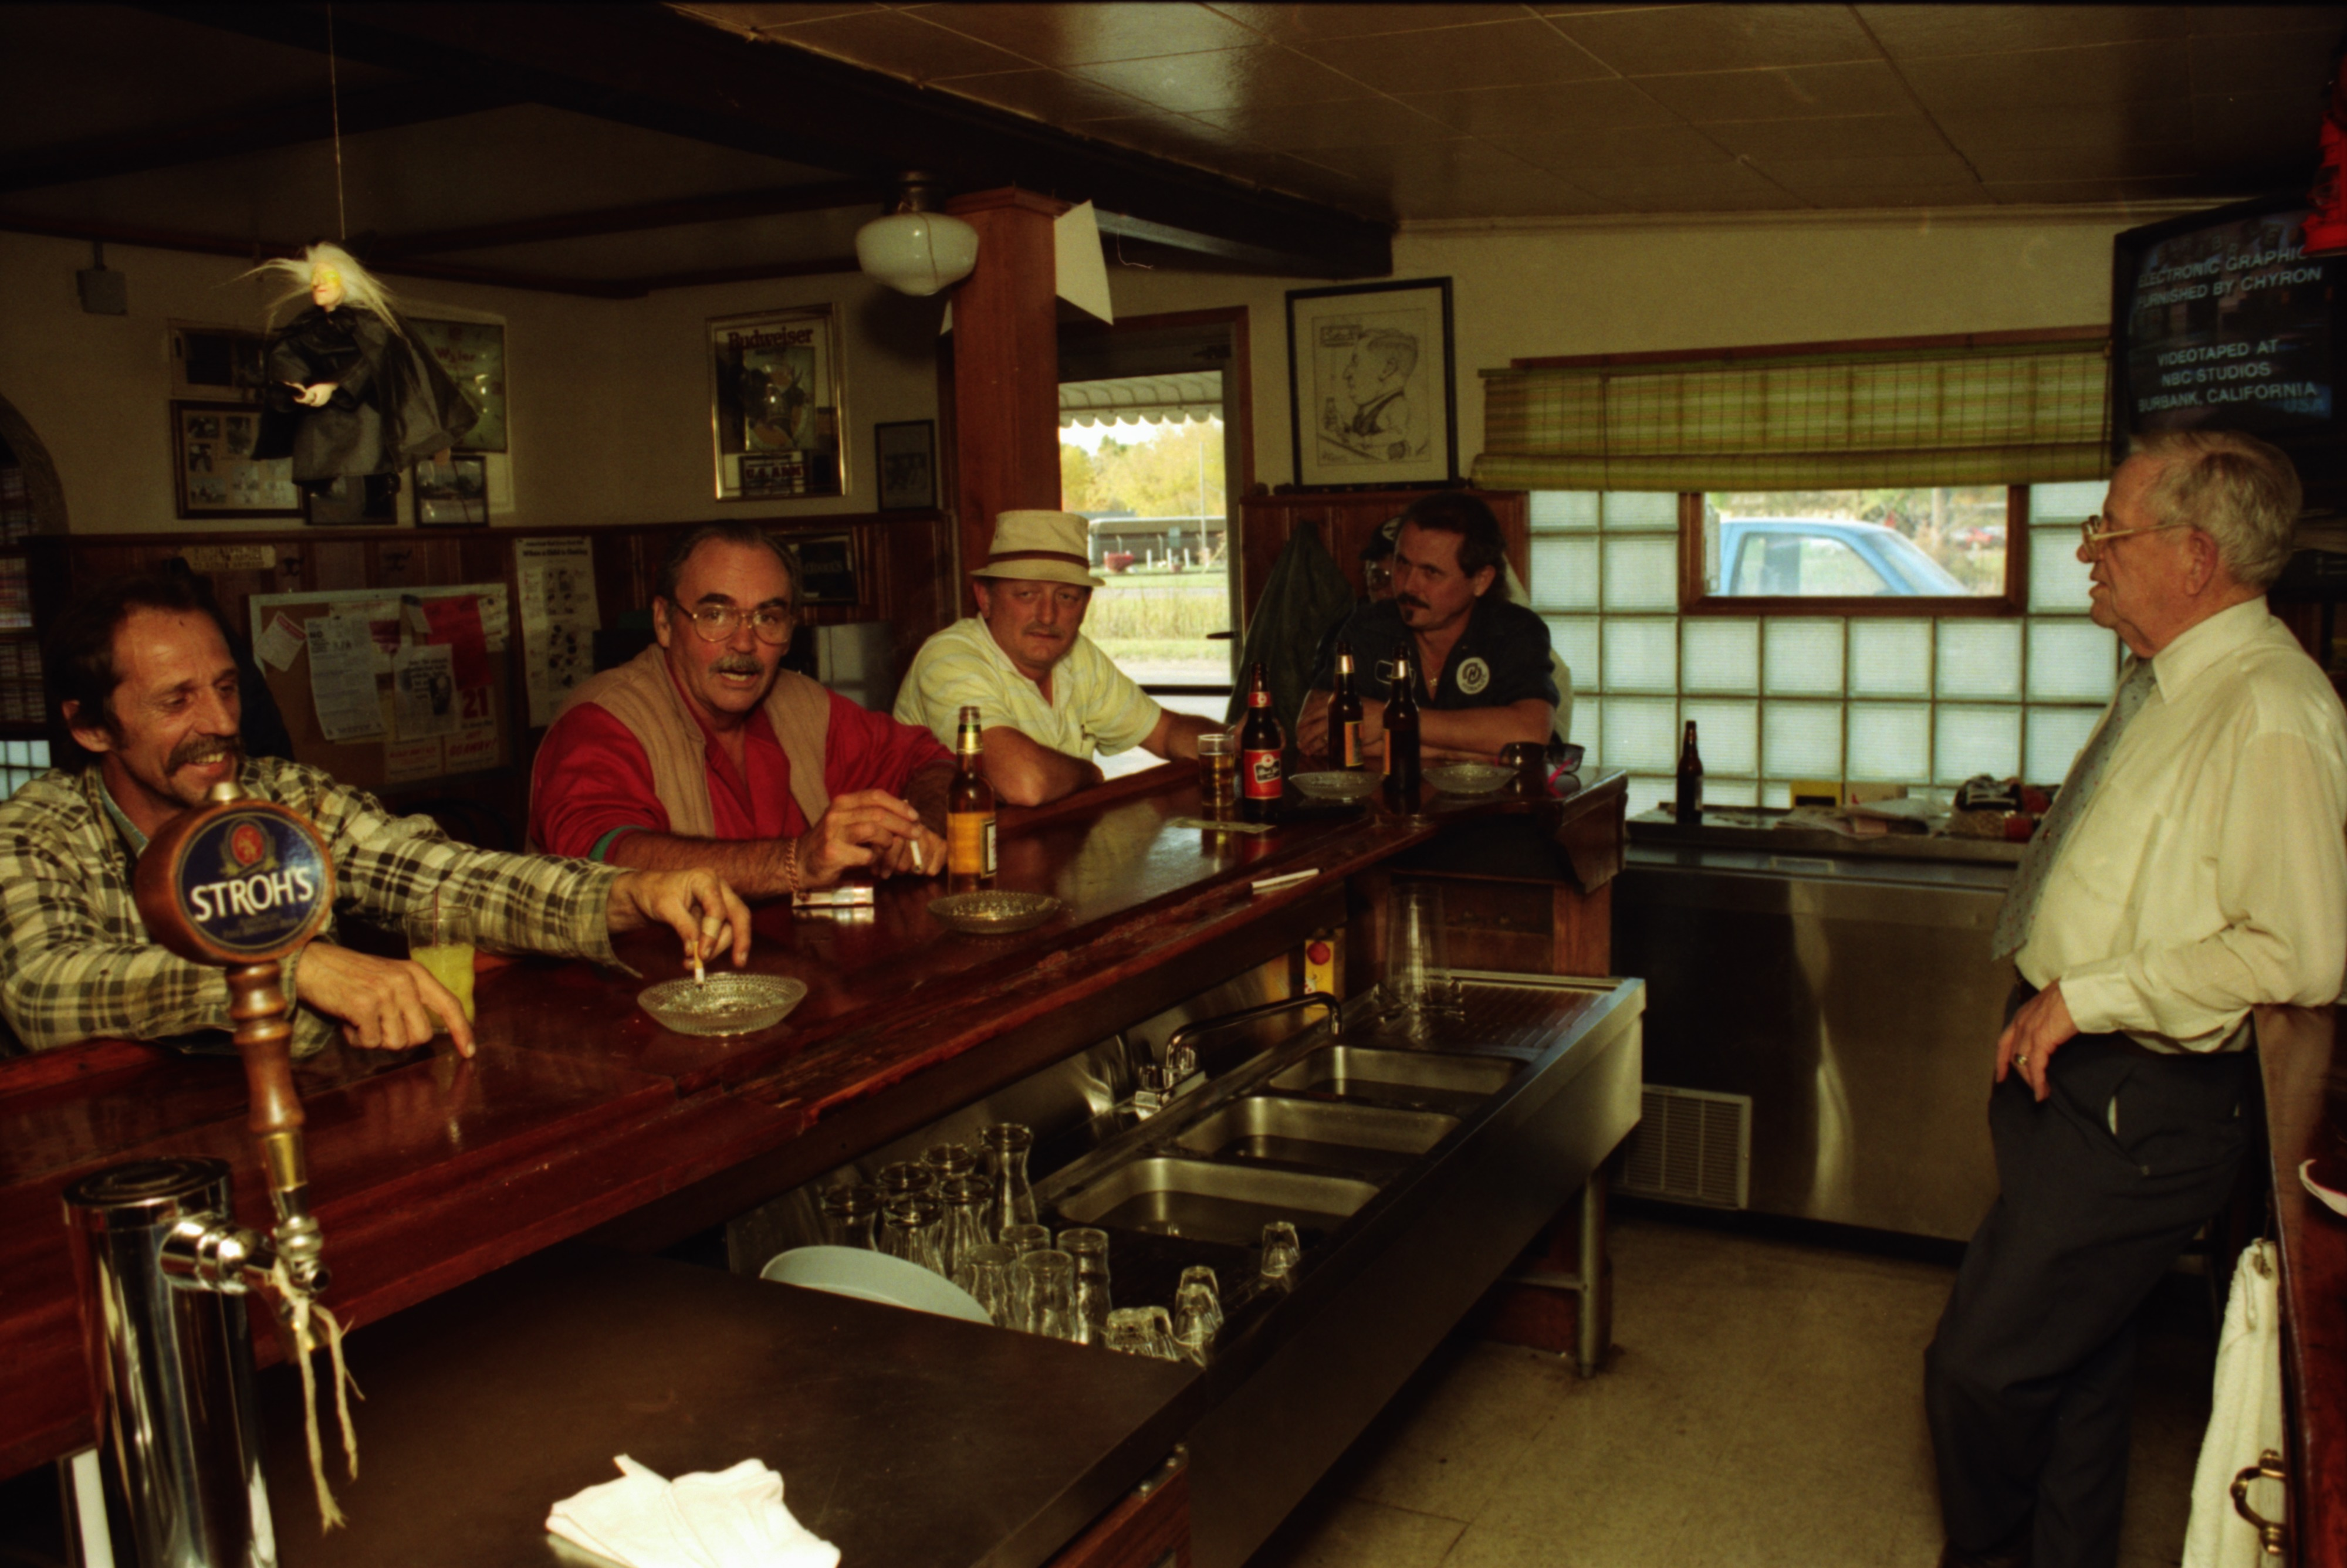 Regulars Discuss Future of GM's Willow Run Plant at the Orange Lantern Bar, October 1992 image